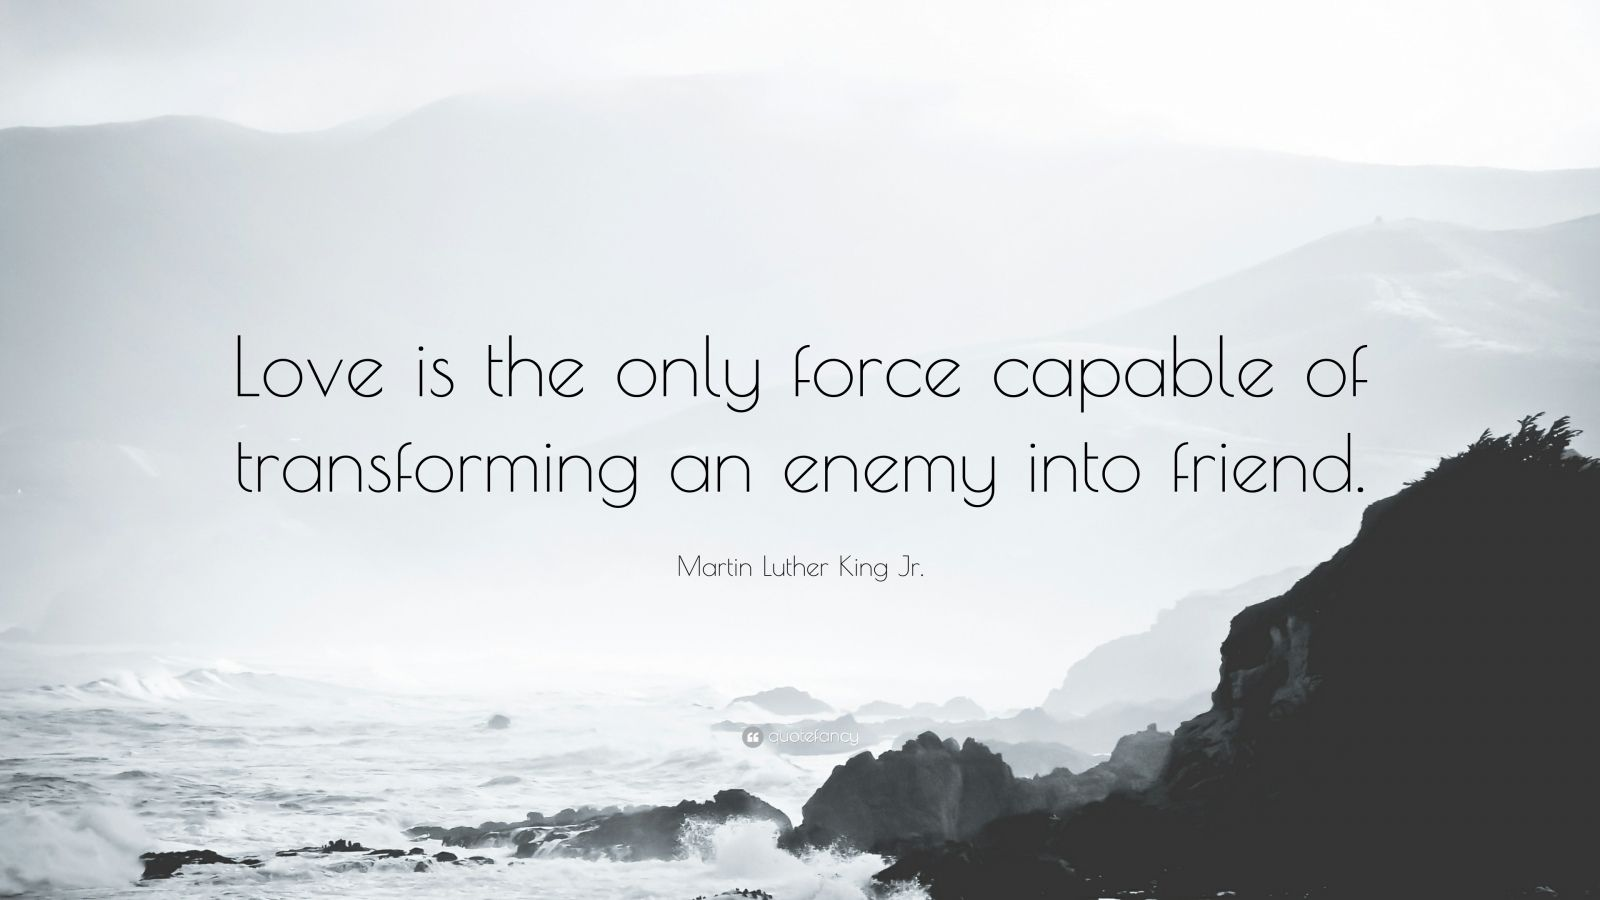 """Martin Luther King Jr. Quote: """"Love is the only force capable of transforming an enemy into friend."""""""